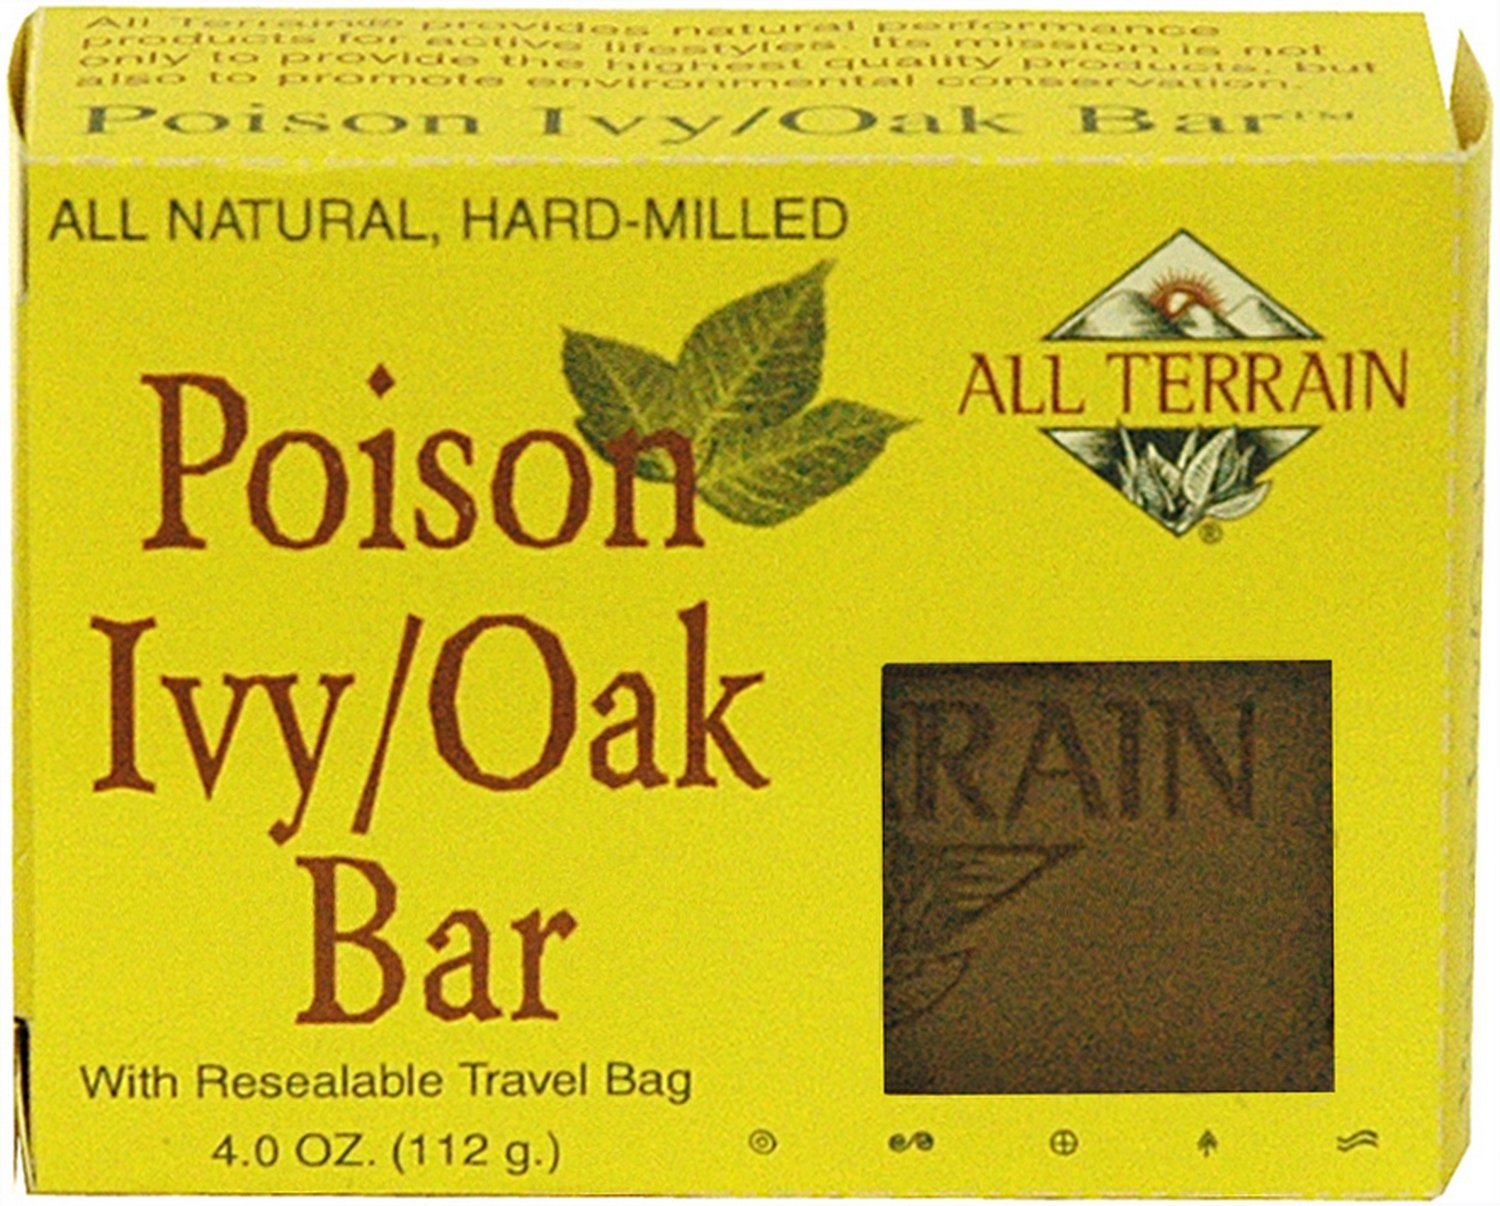 All Terrain Poison Ivy/Oak Bar